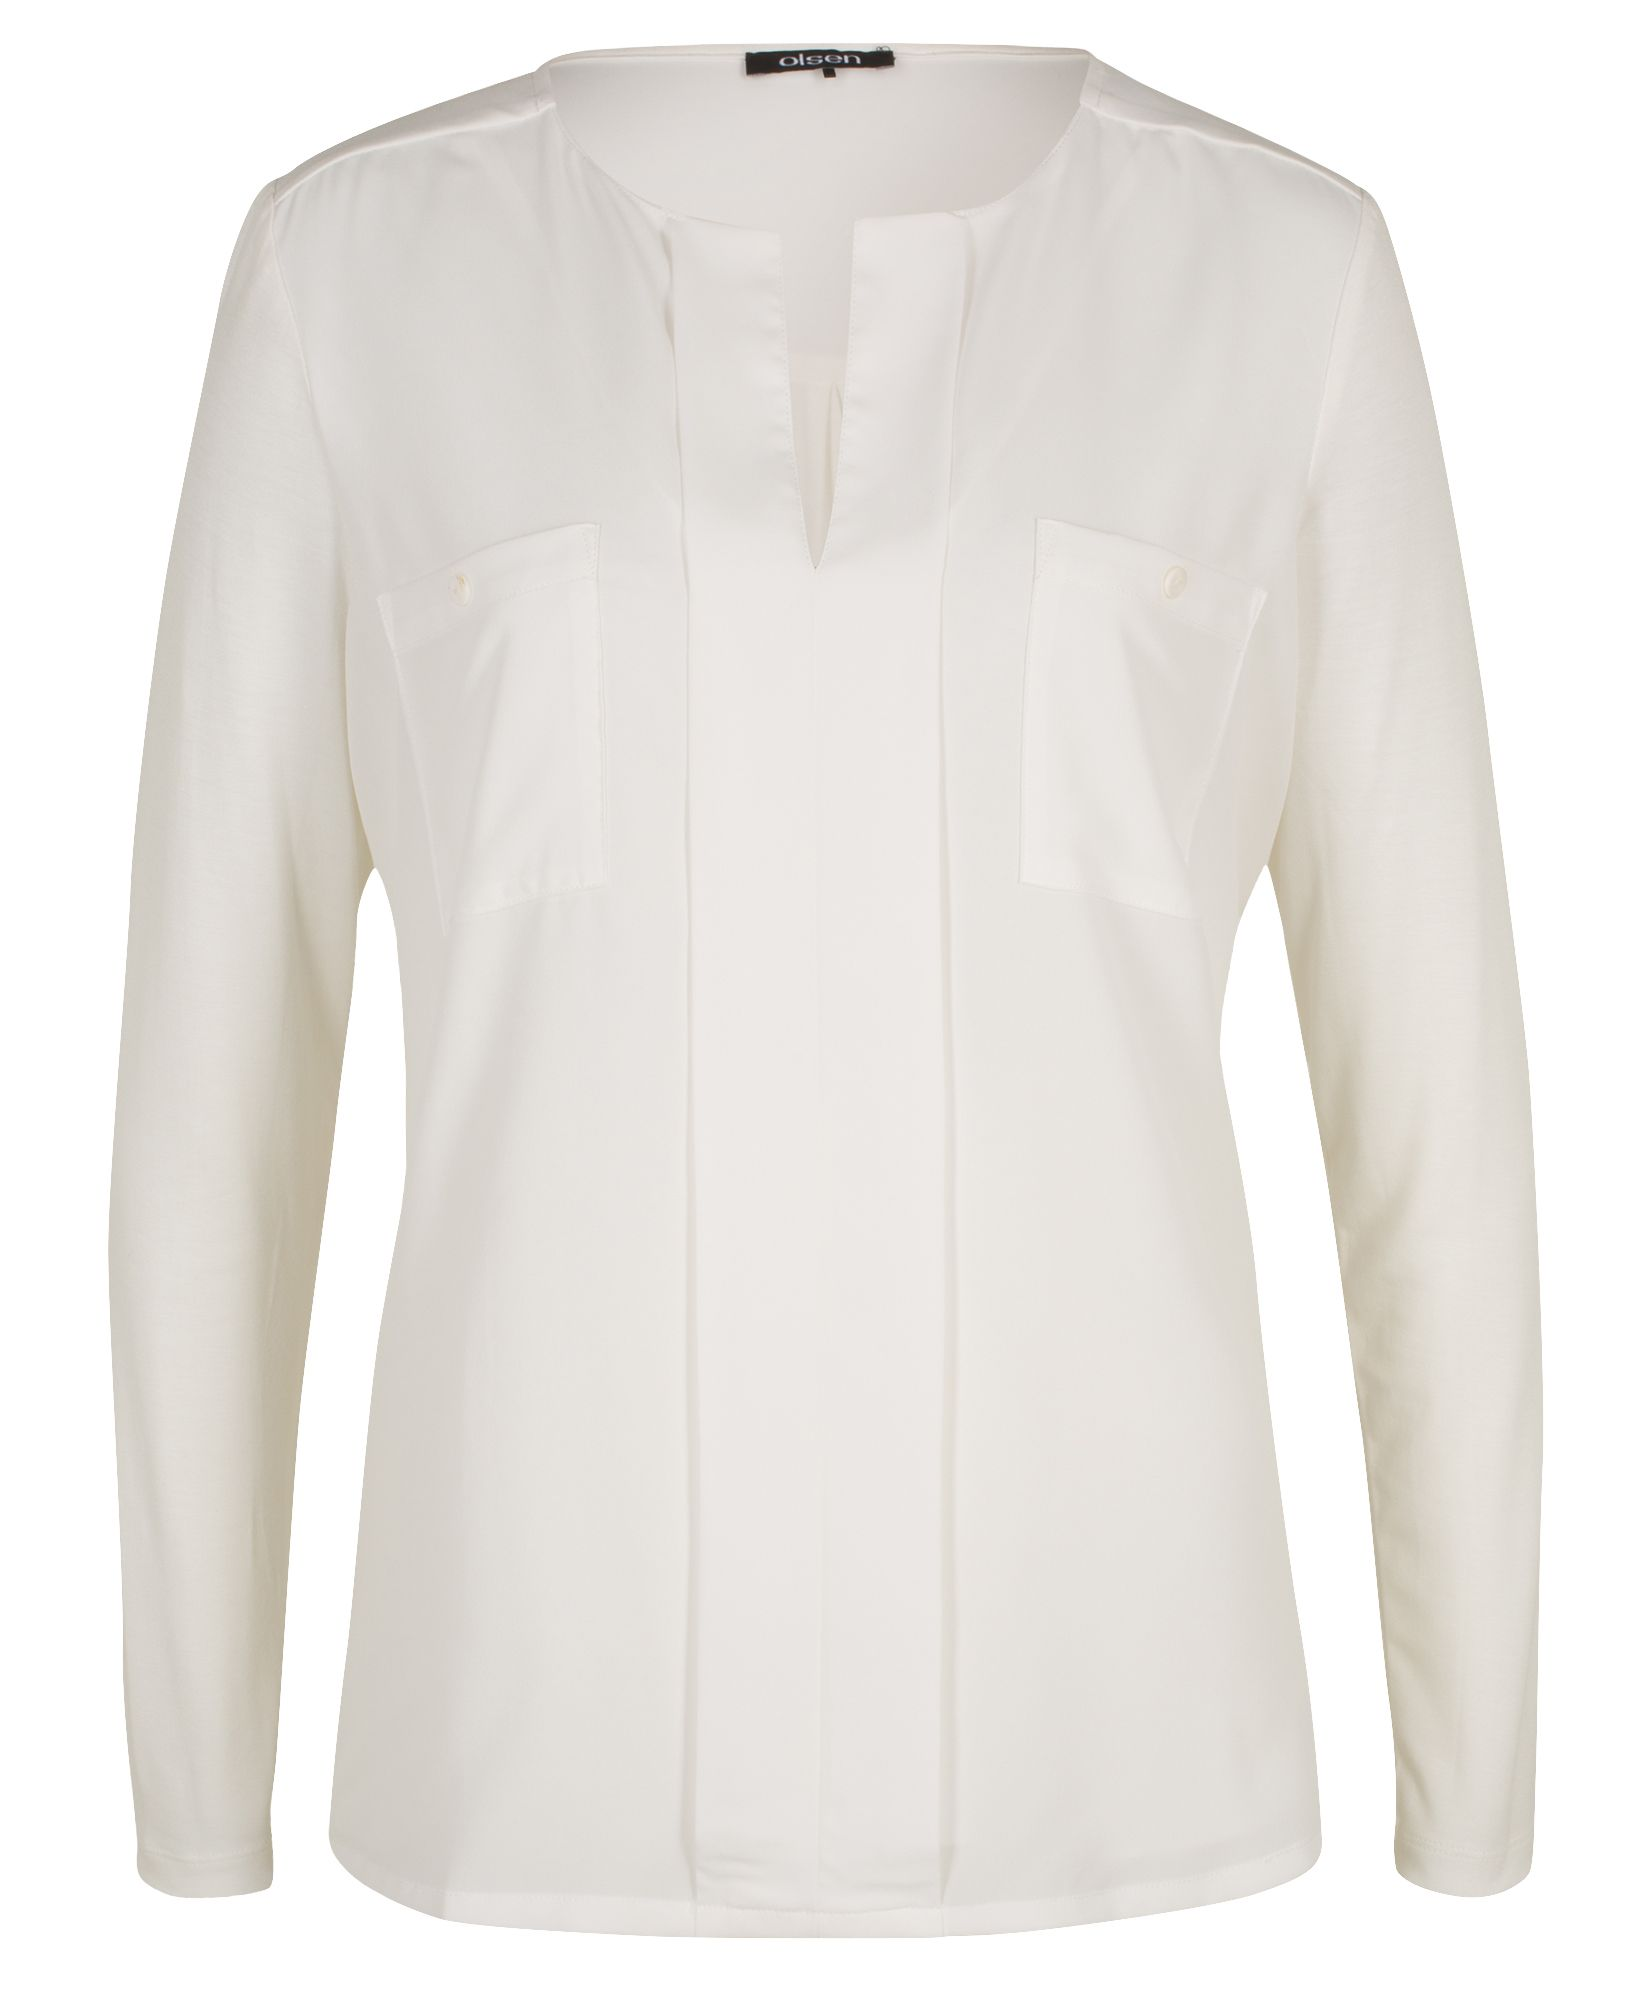 Olsen Airy T-Shirt, Off White